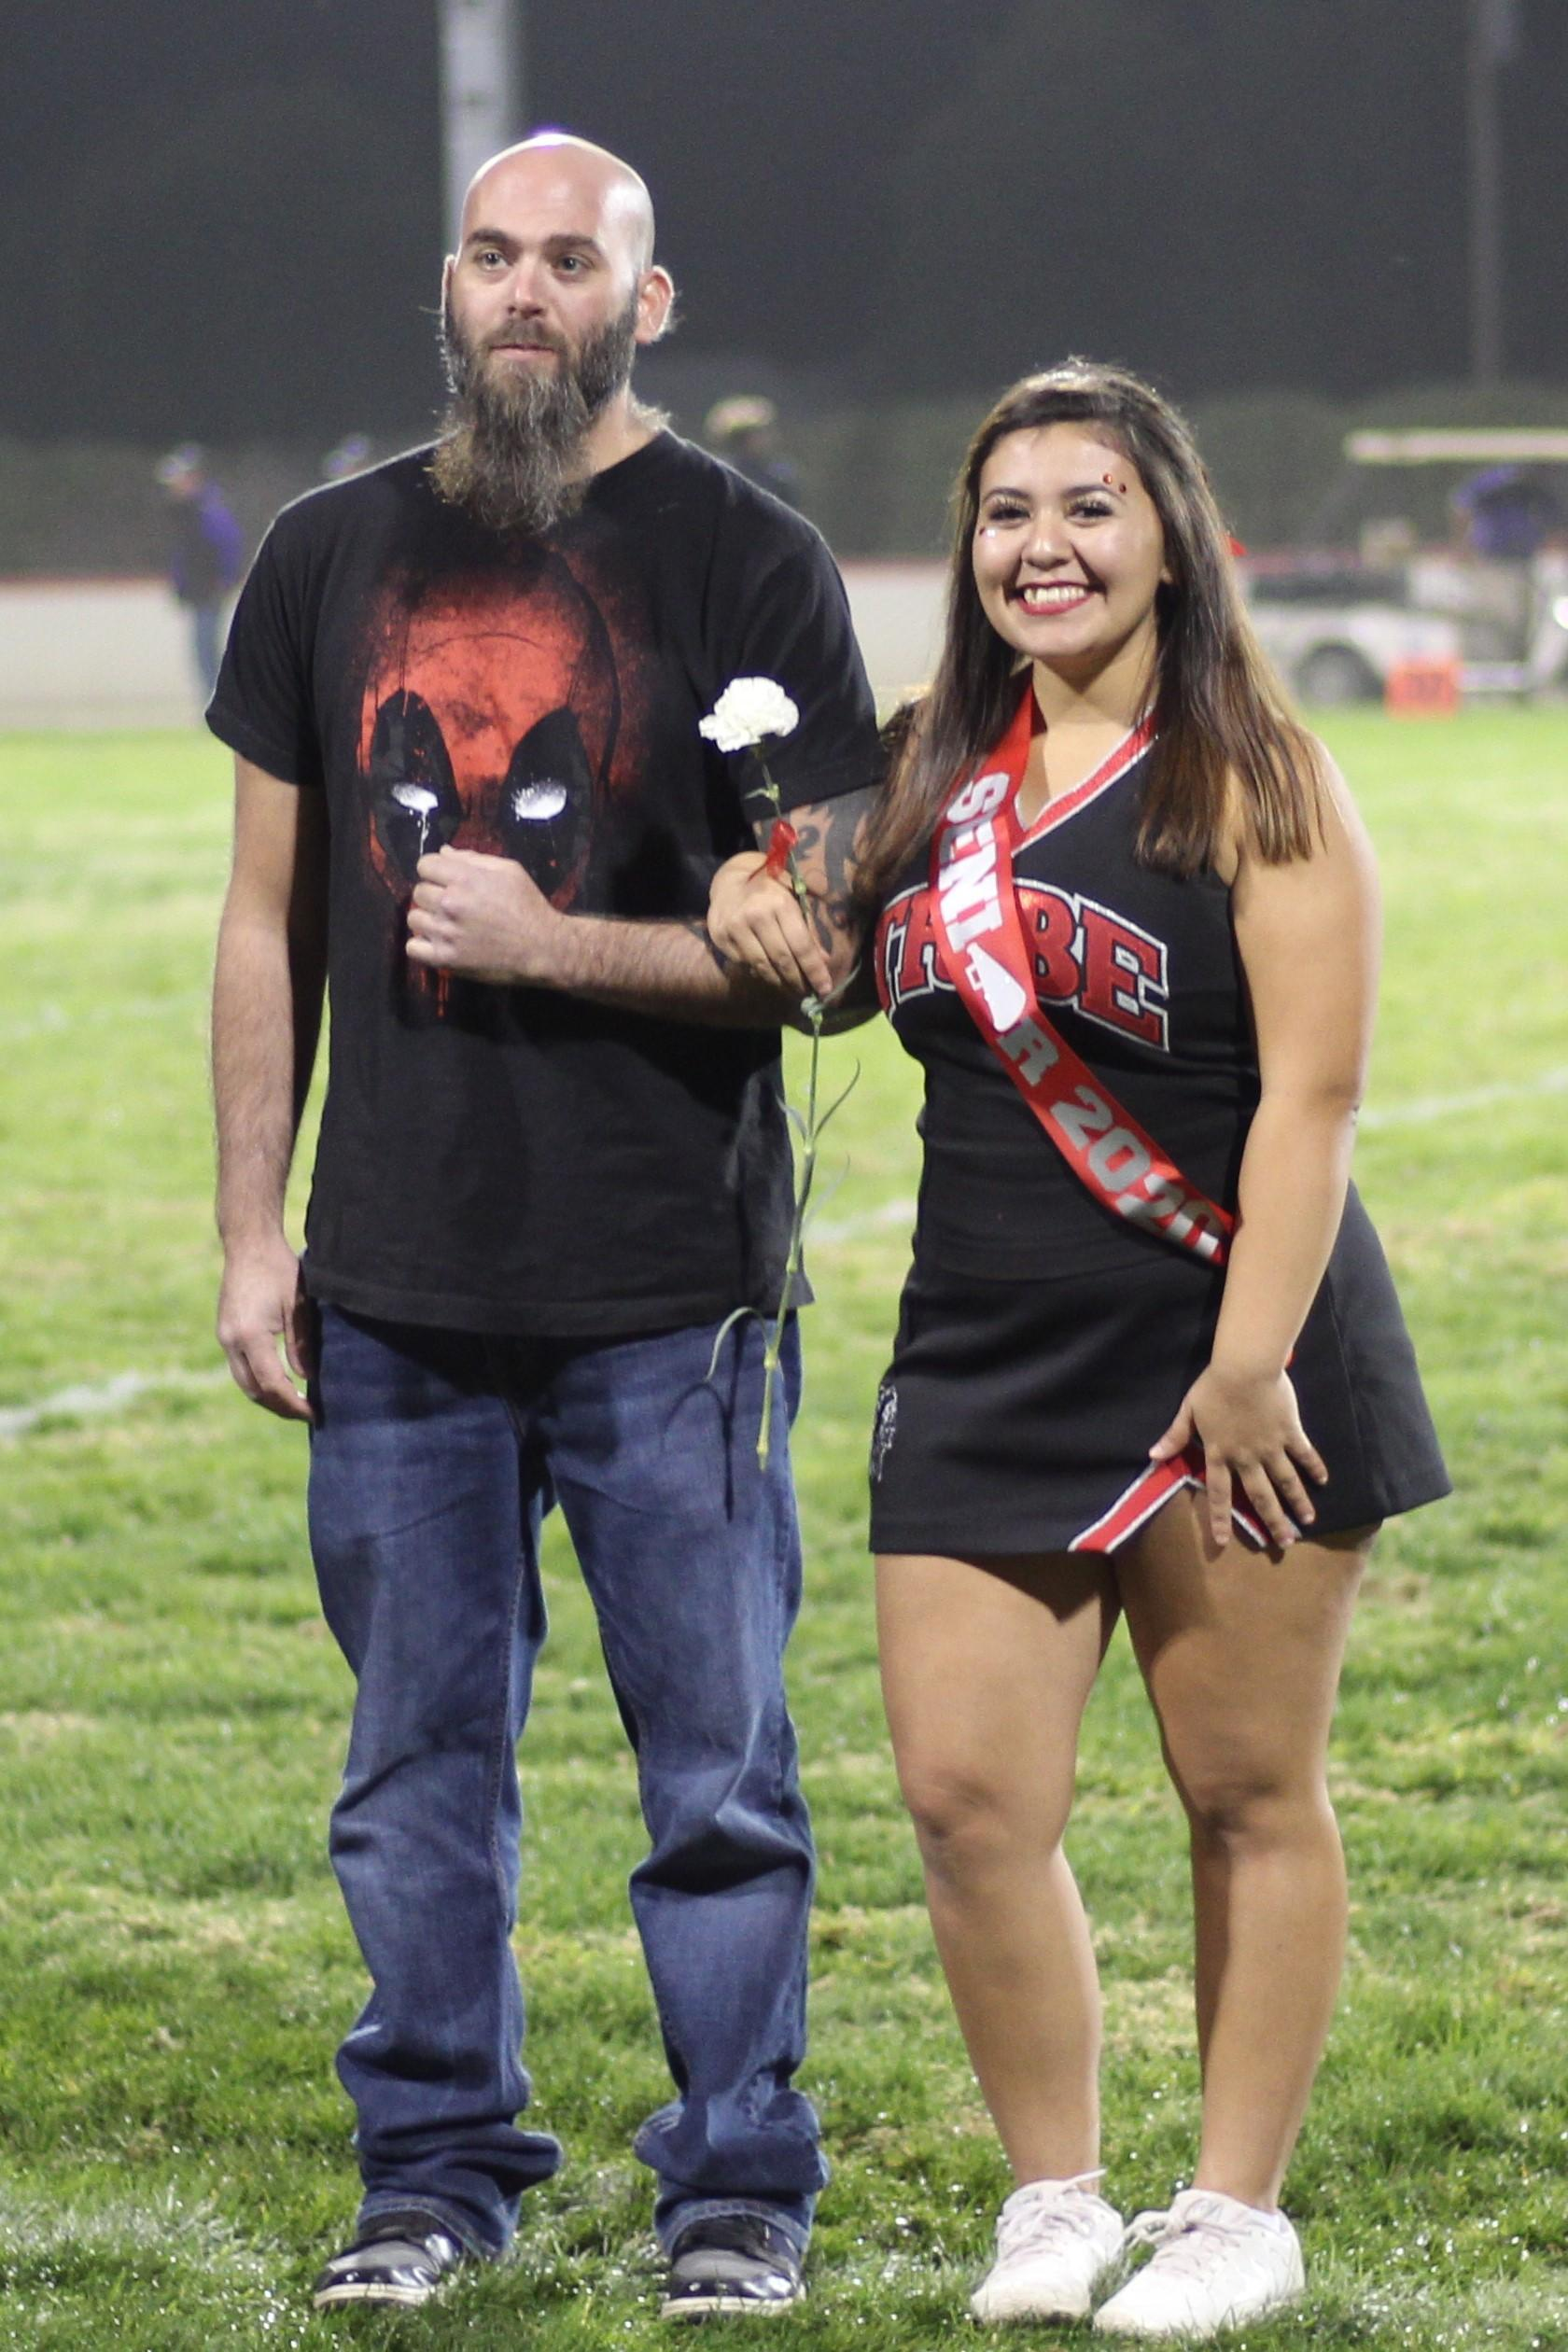 Senior cheerleader Kayln Hobart and her escort.